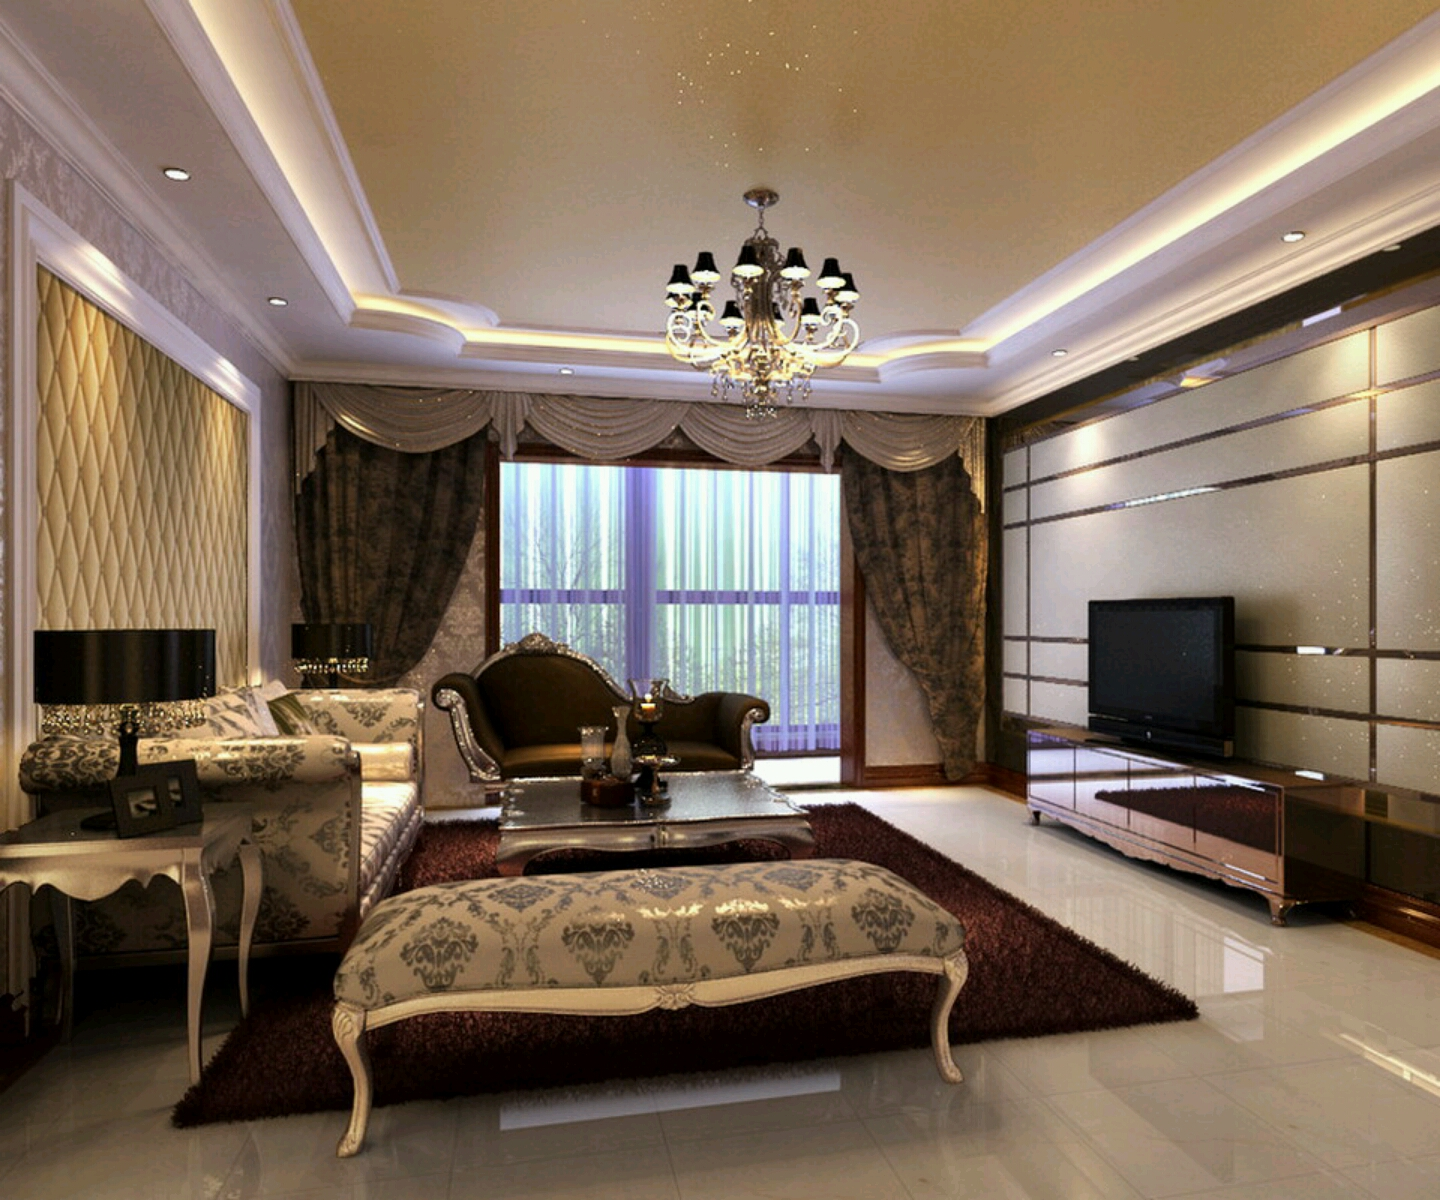 New home designs latest luxury homes interior decoration for Interior design living room layout